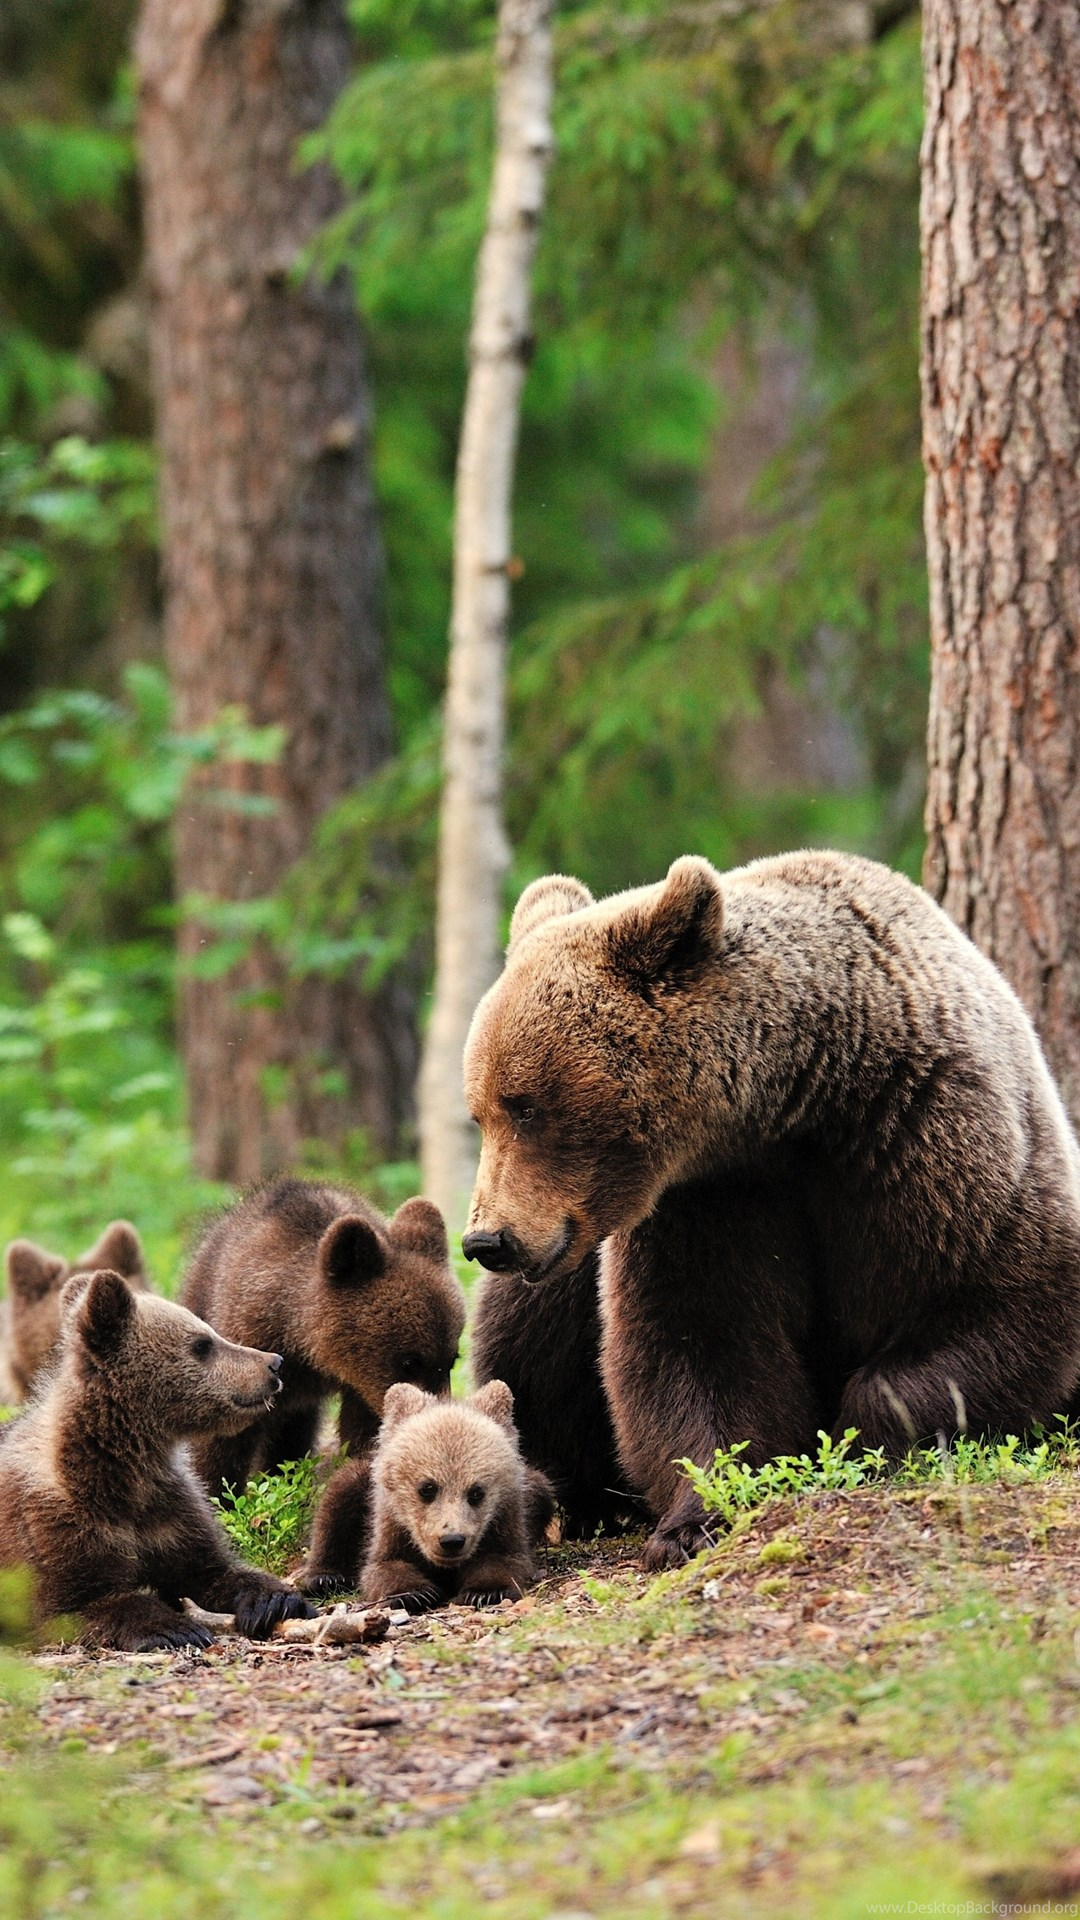 Mobile Wallpaper Cute Baby Bear Bears Forest Trees Baby Cub Cubs Mother Family Cute